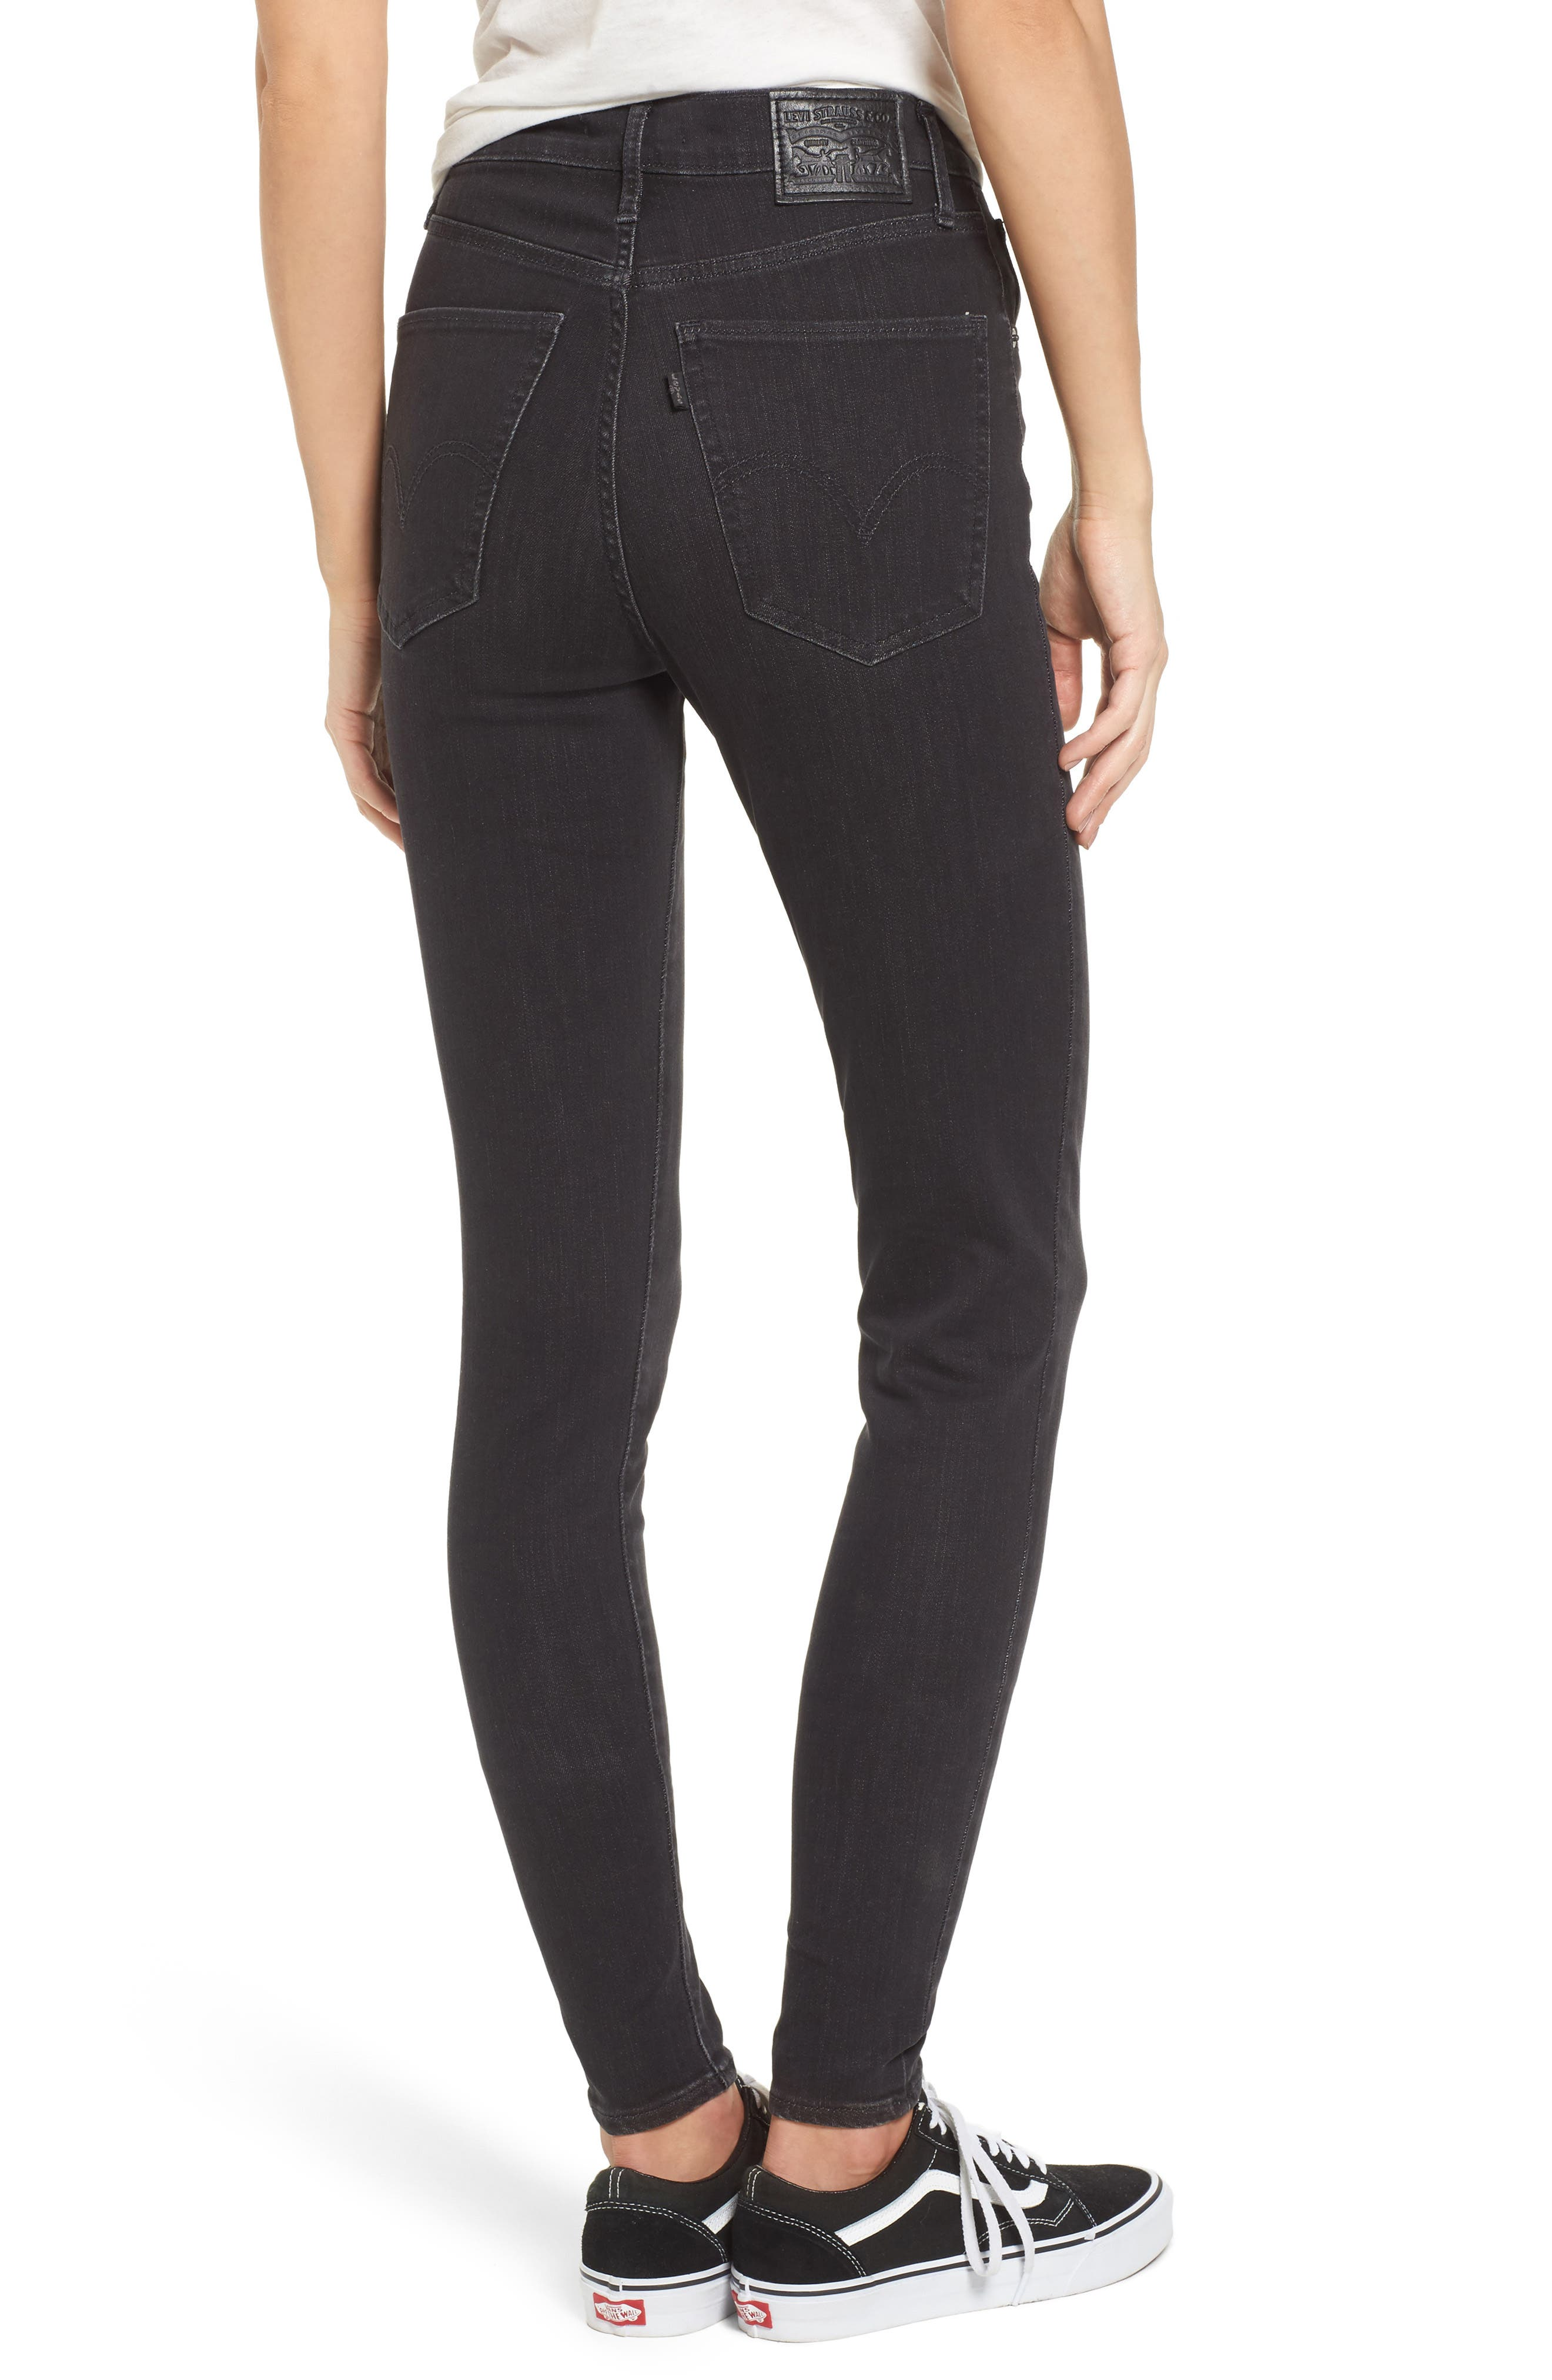 Mile High High Rise Skinny Jeans,                             Alternate thumbnail 2, color,                             Faded Ink